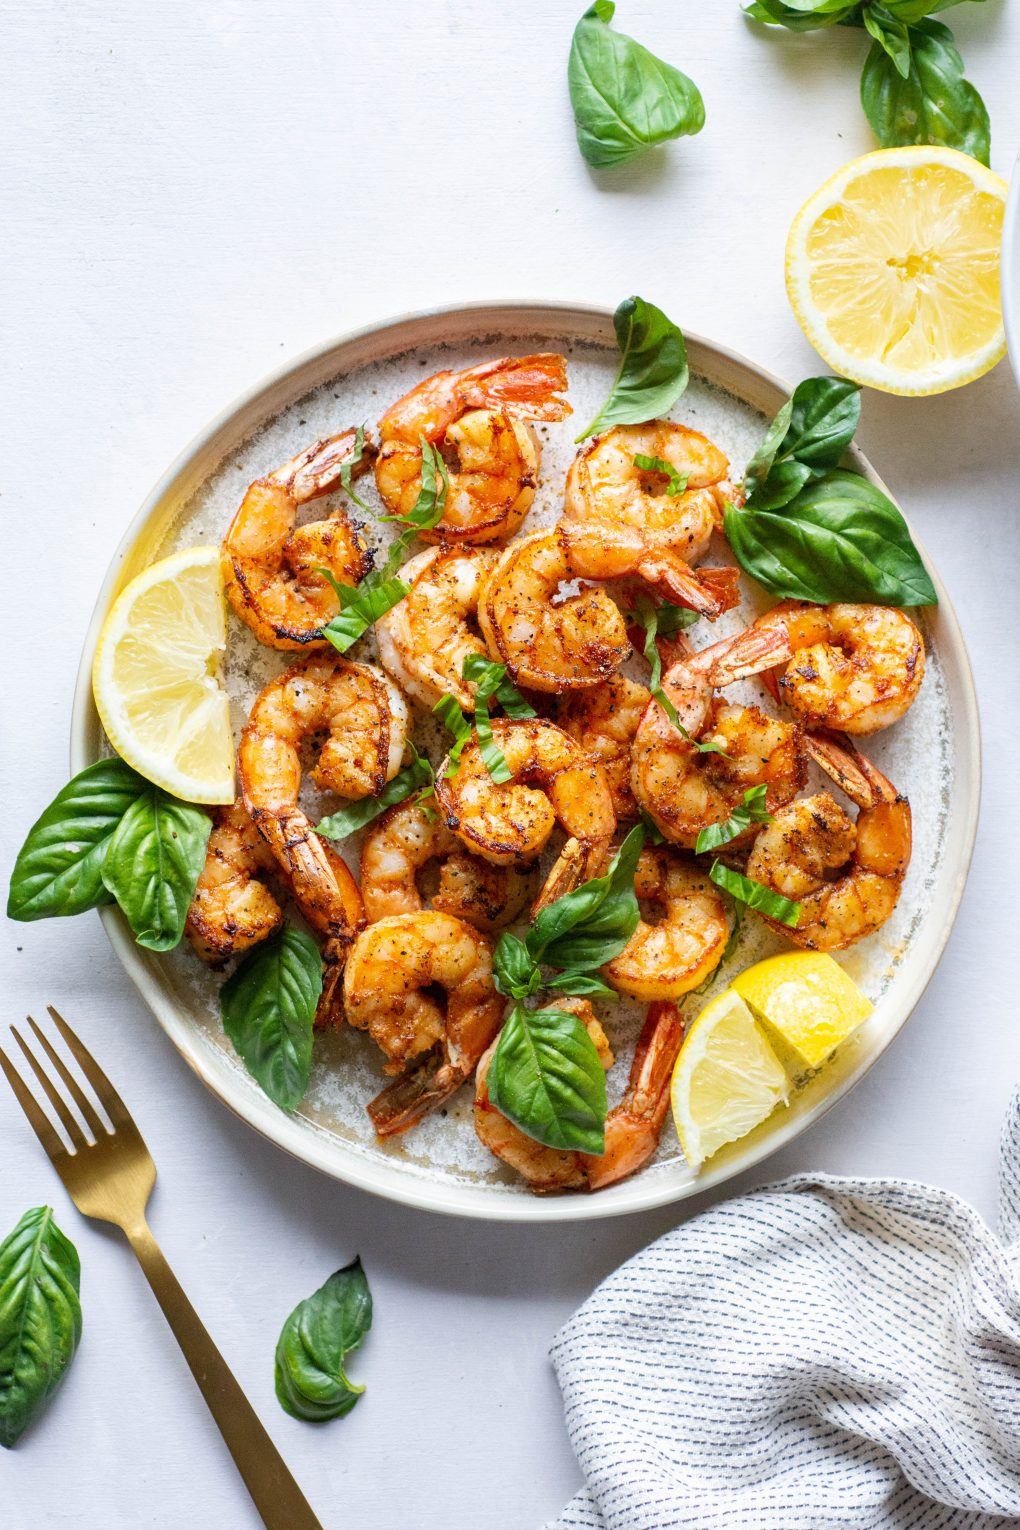 Plate of seared shrimp topped with fresh basil and lemon wedges on a light background next to loose basil leaves, a fork, and a striped dish towel